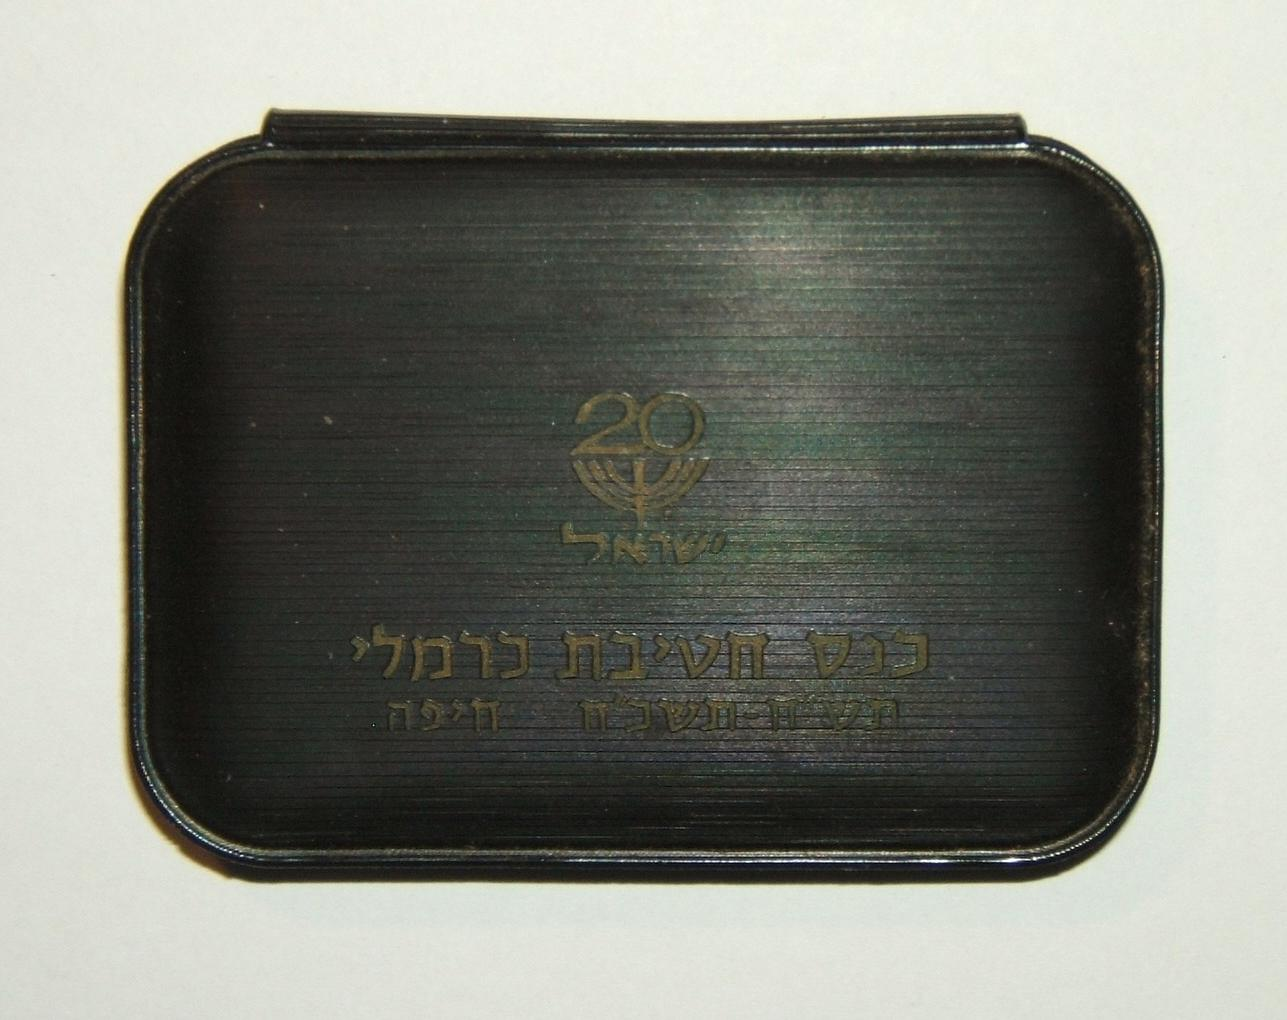 Haganah 'Carmeli Brigade' conference medal w/signed greetings by Moshe Carmel